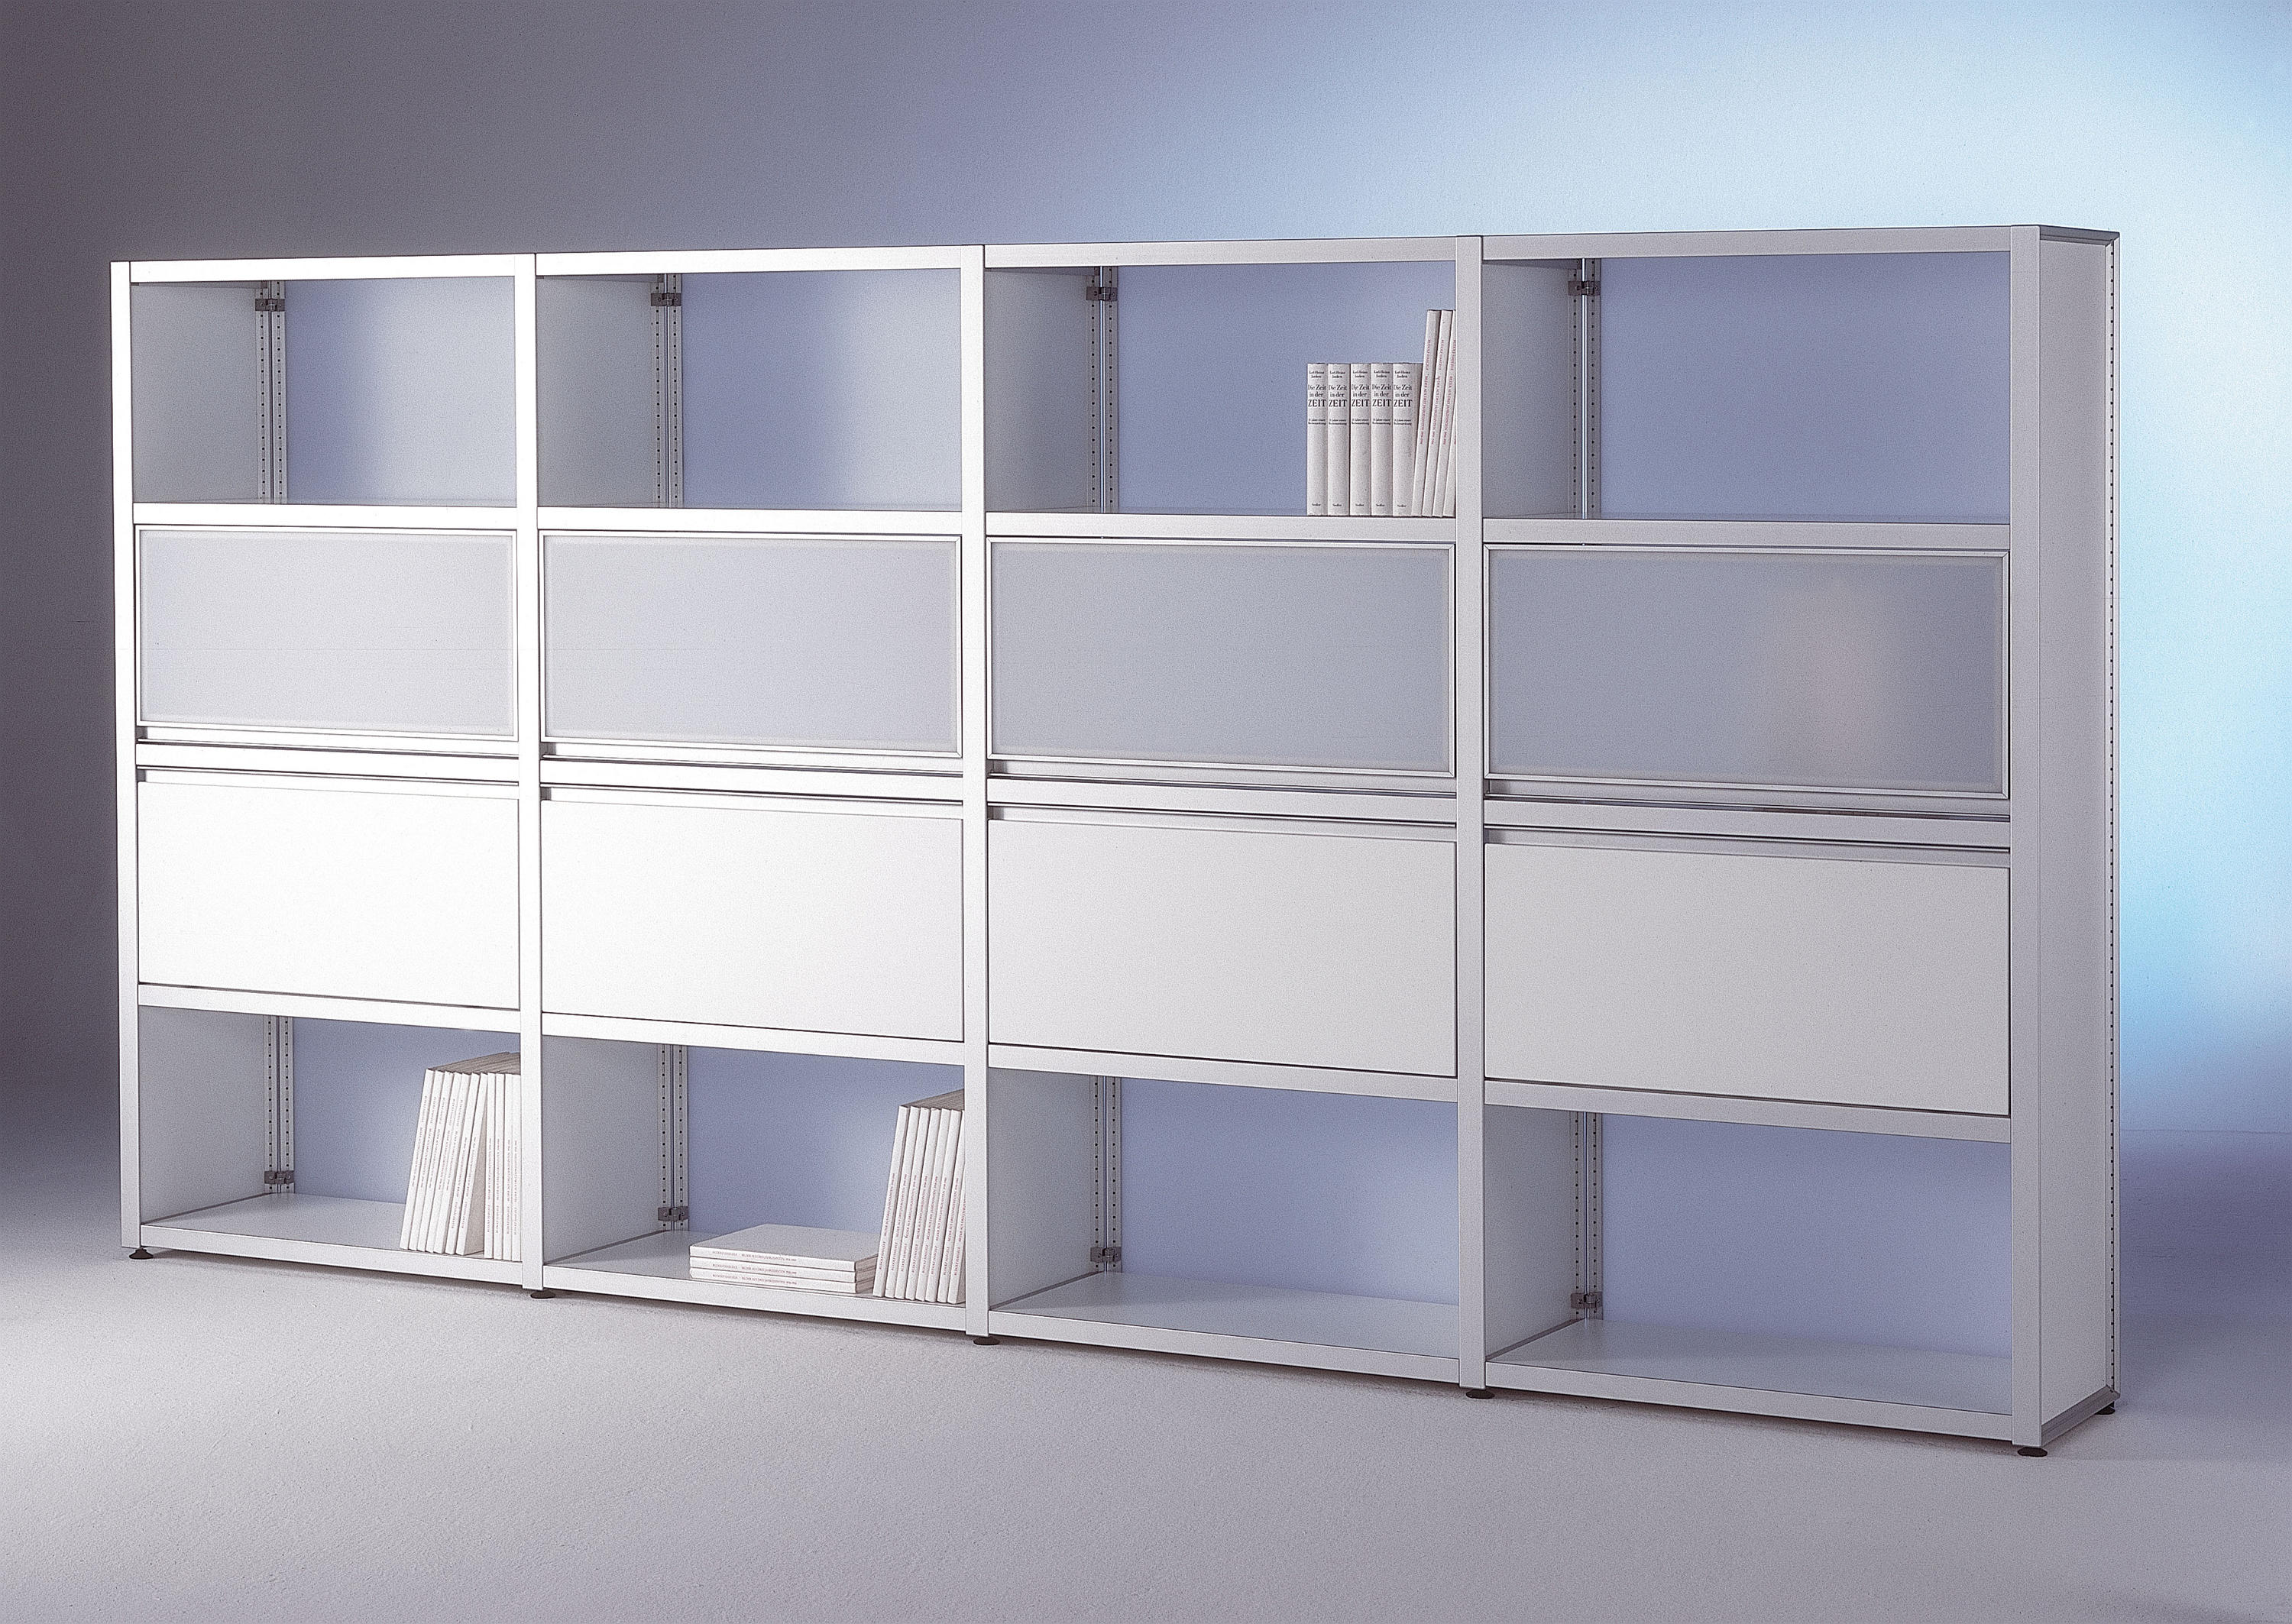 ARCHIVA 1 - Shelving systems from gumpo   Architonic